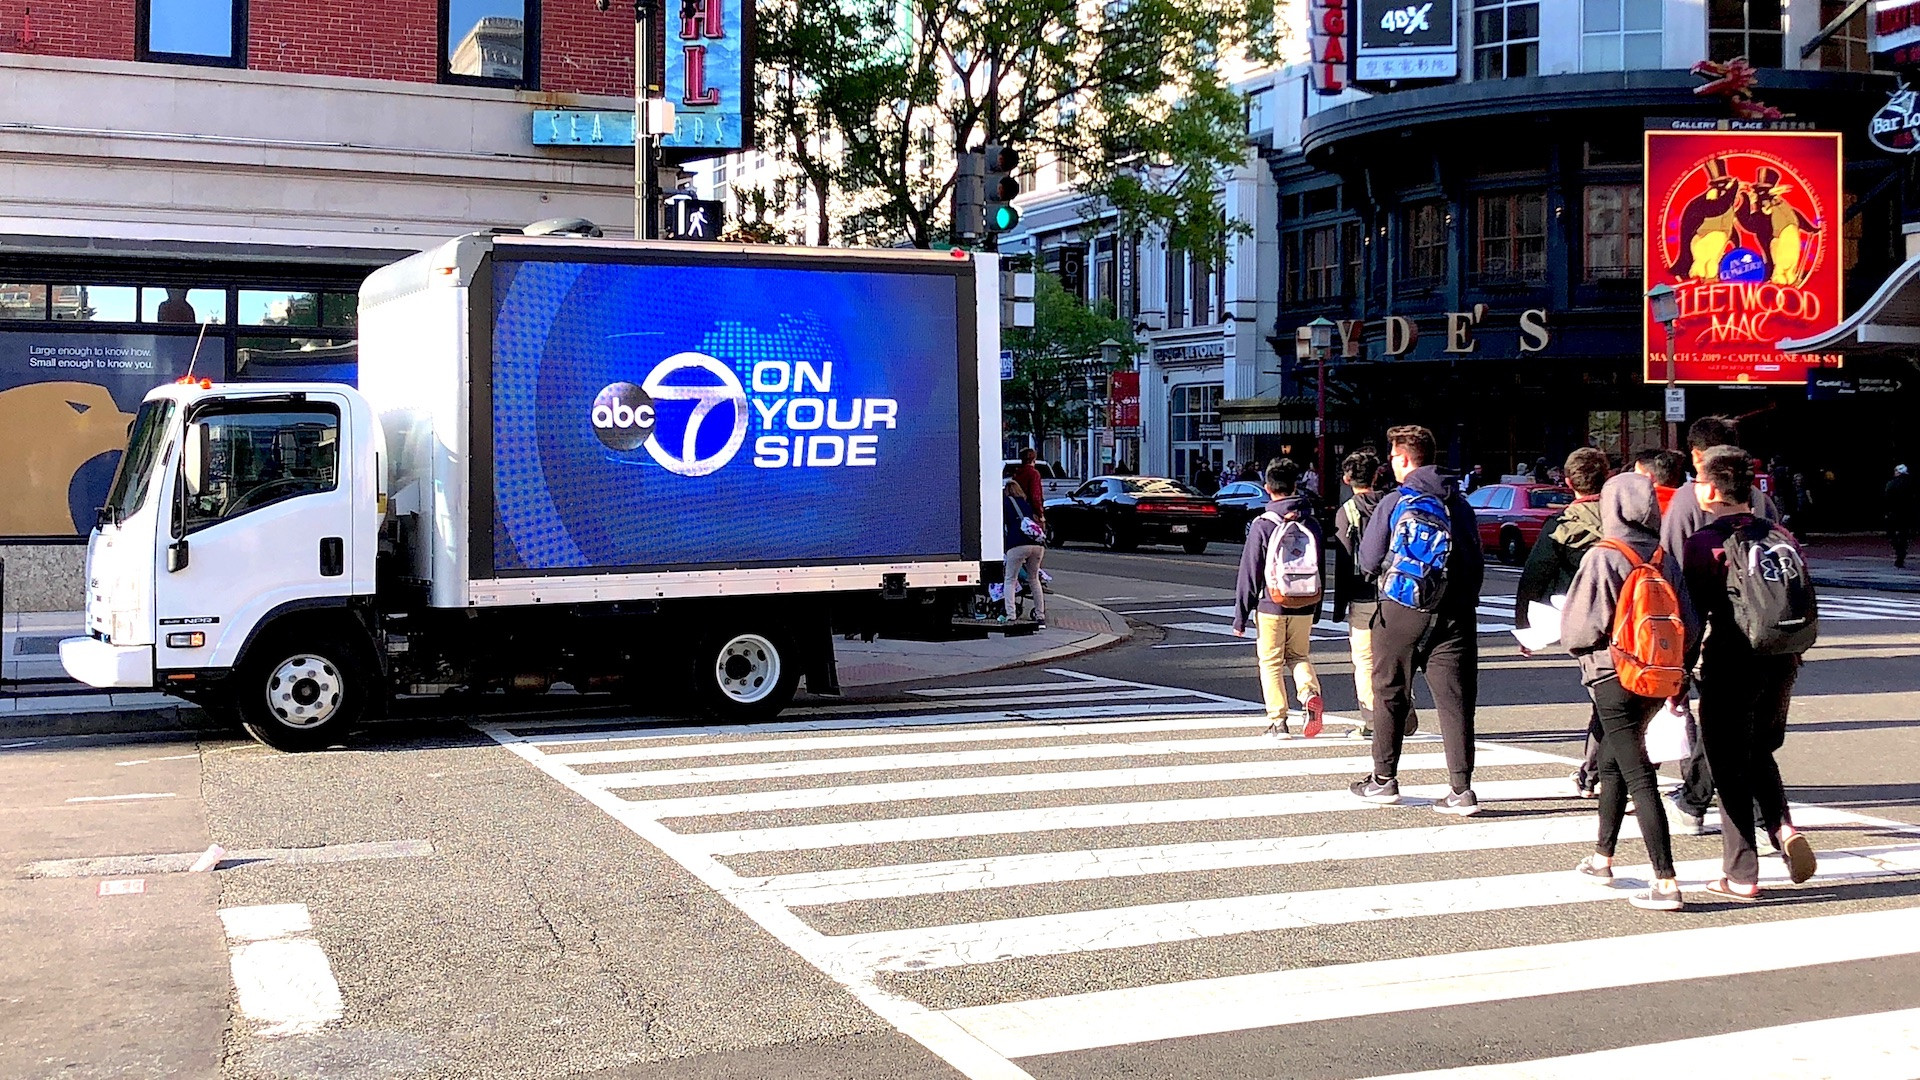 ABC 7 DC - PIC - 013 - MATV BILLBOARDS -